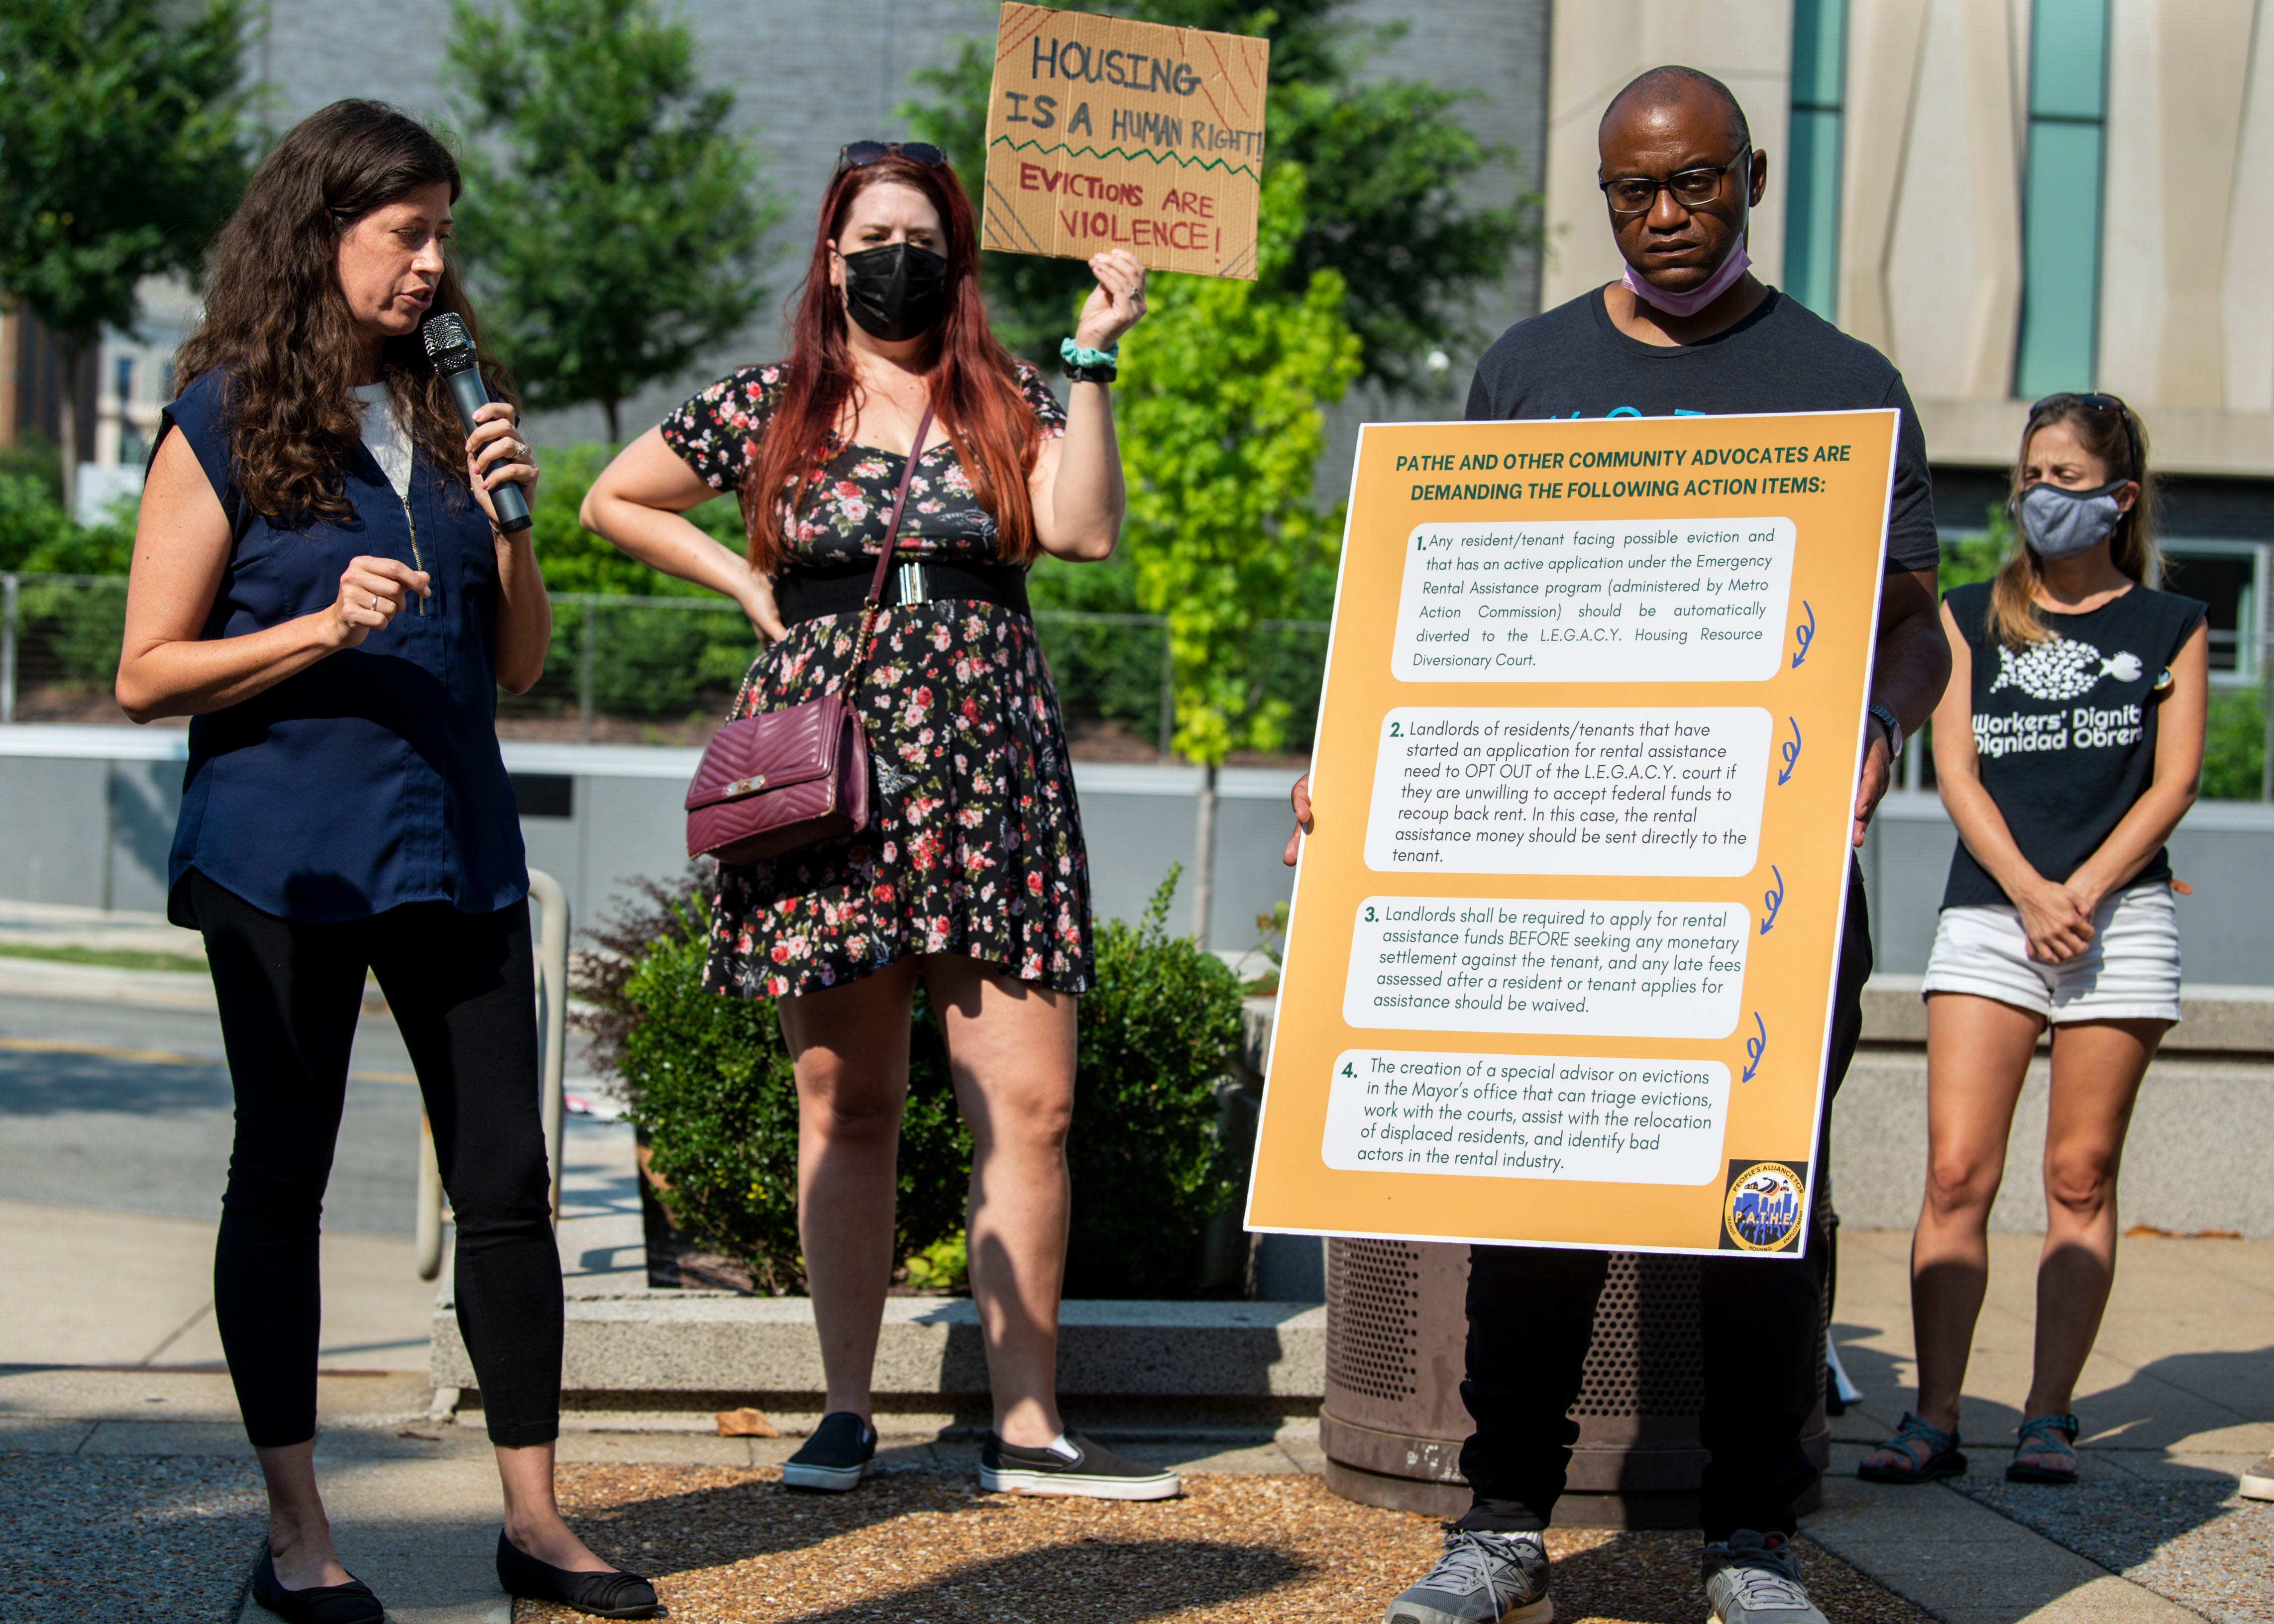 Melissa Cherry reads the action items made by PATHE and other community advocates for  during a press conference held by People's Alliance for Transit, Housing and Employment outside the Justice A. A. Birch Building in Nashville, Tenn., on Wednesday, July 28, 2021.